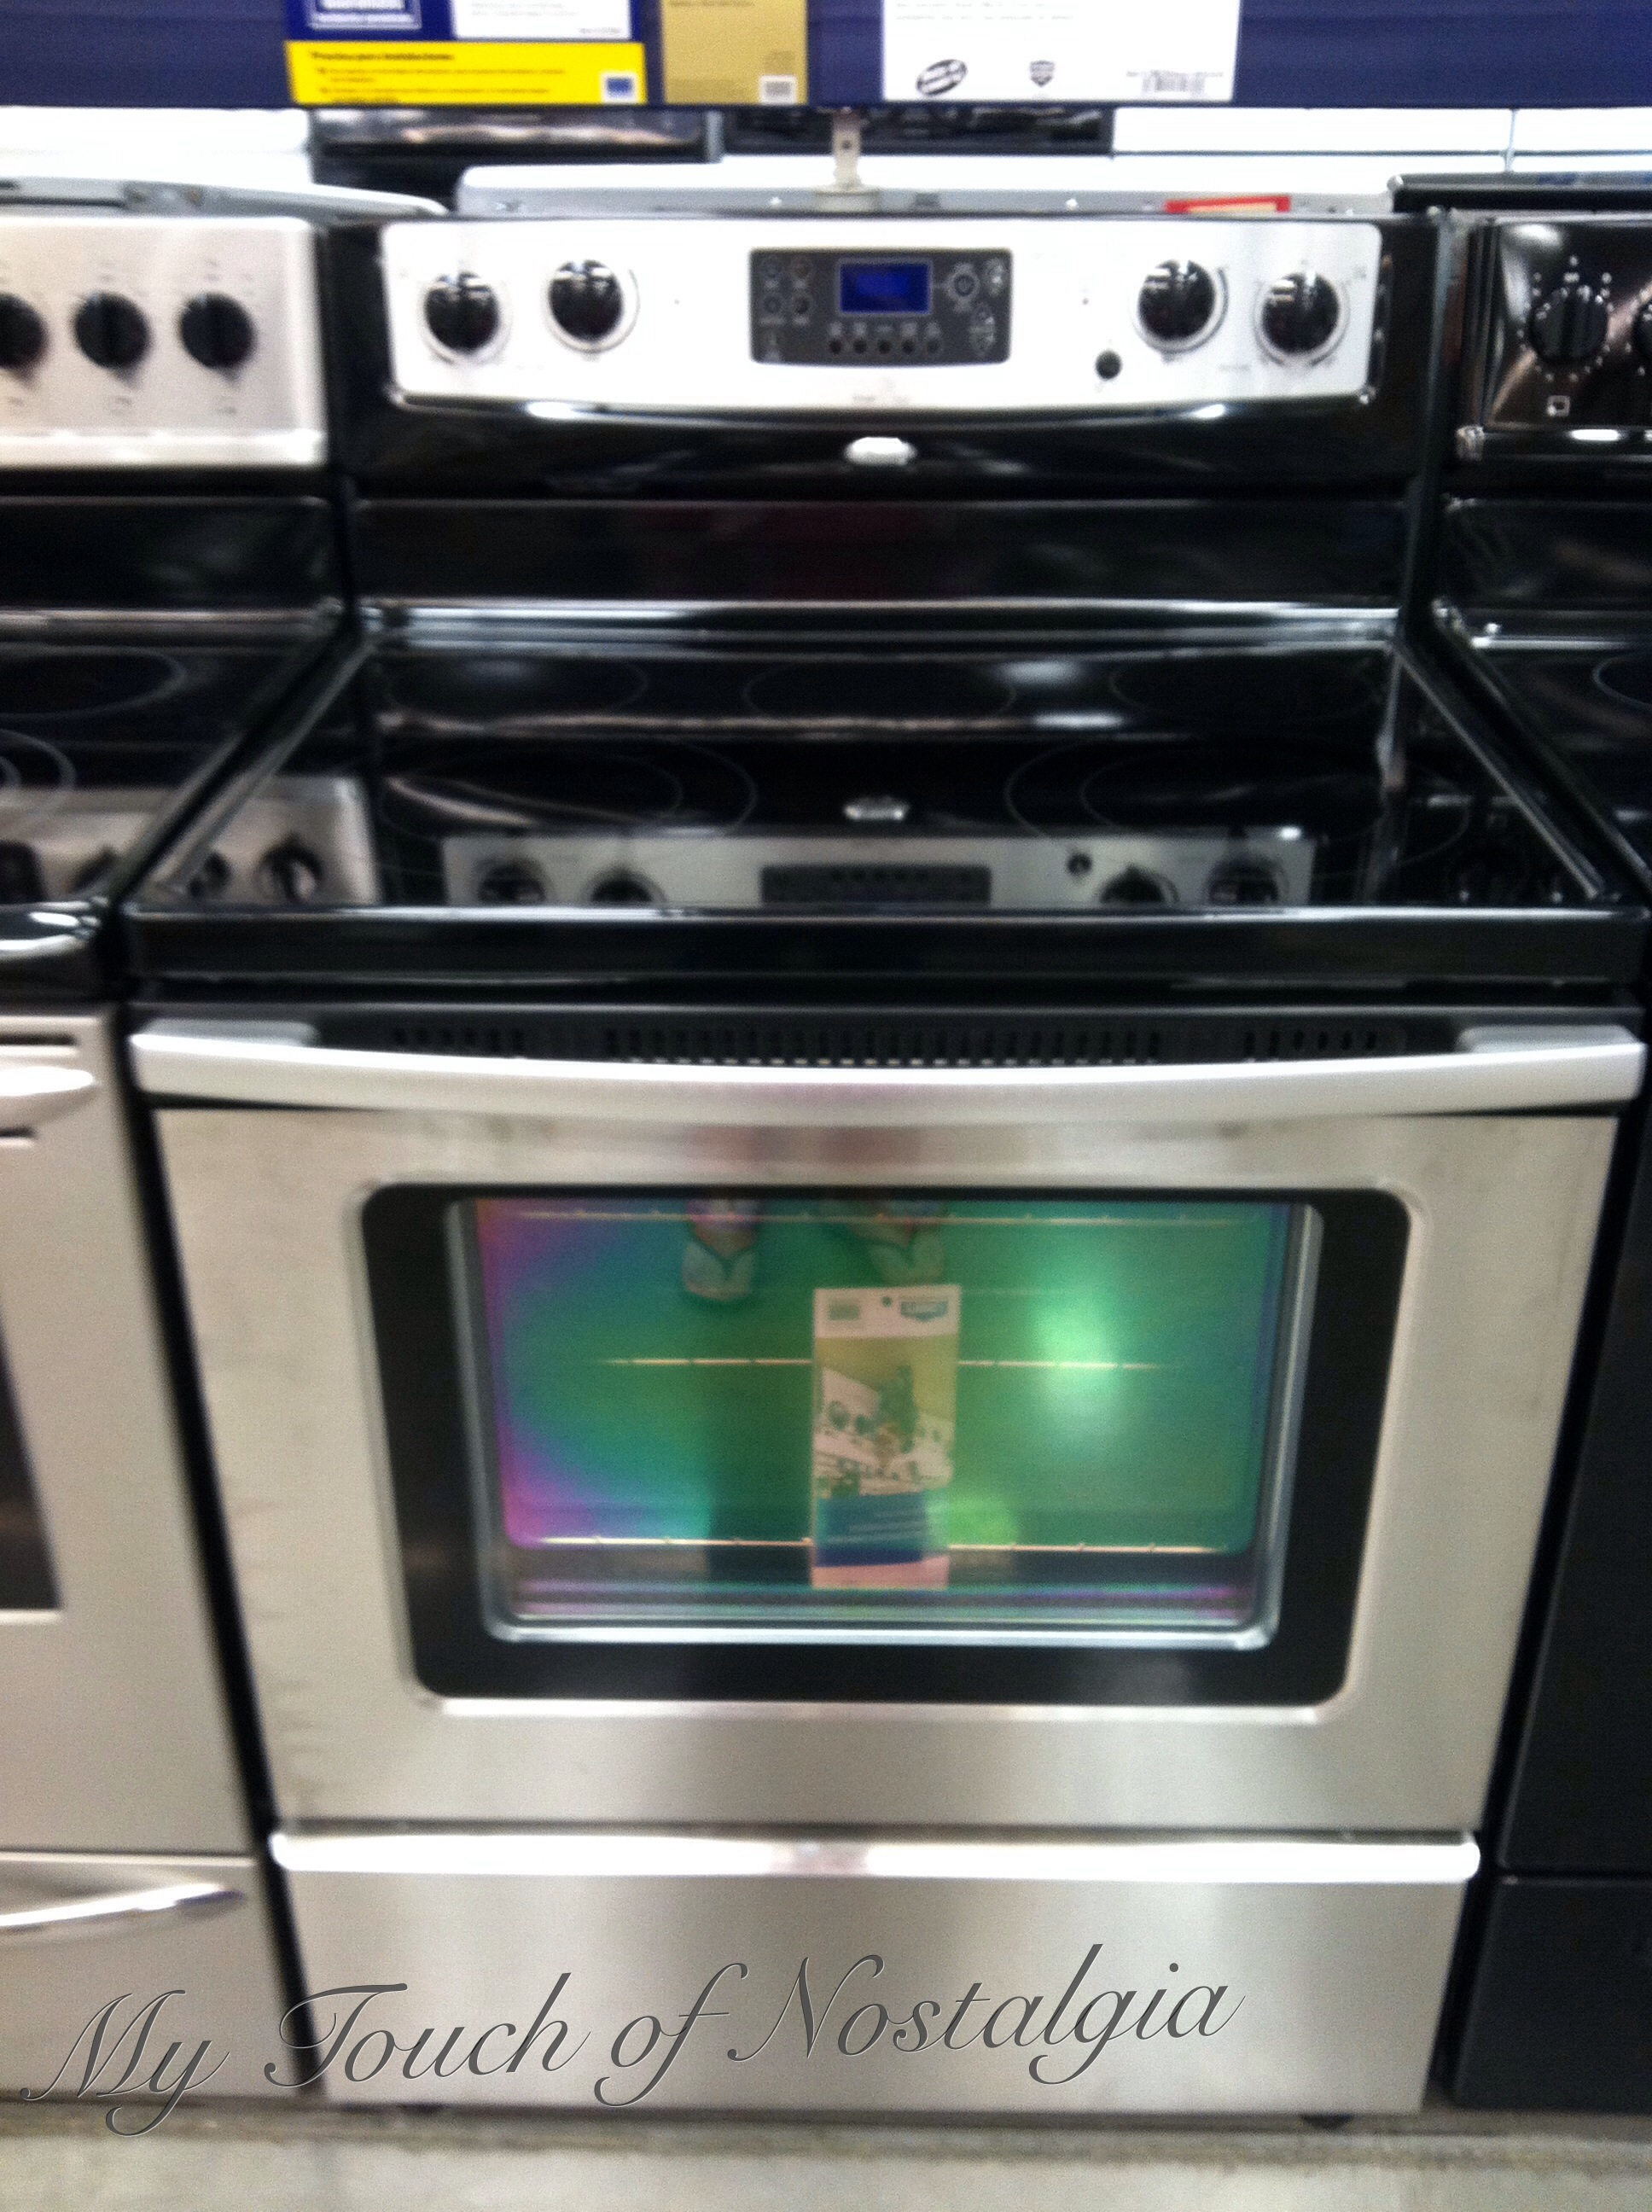 exciting cook stoves at lowes. Of course when I show Mr  Nostalgia his refrigerator photos well that the one he has to have So on sales weekend head Lowes purchase my new My touch of